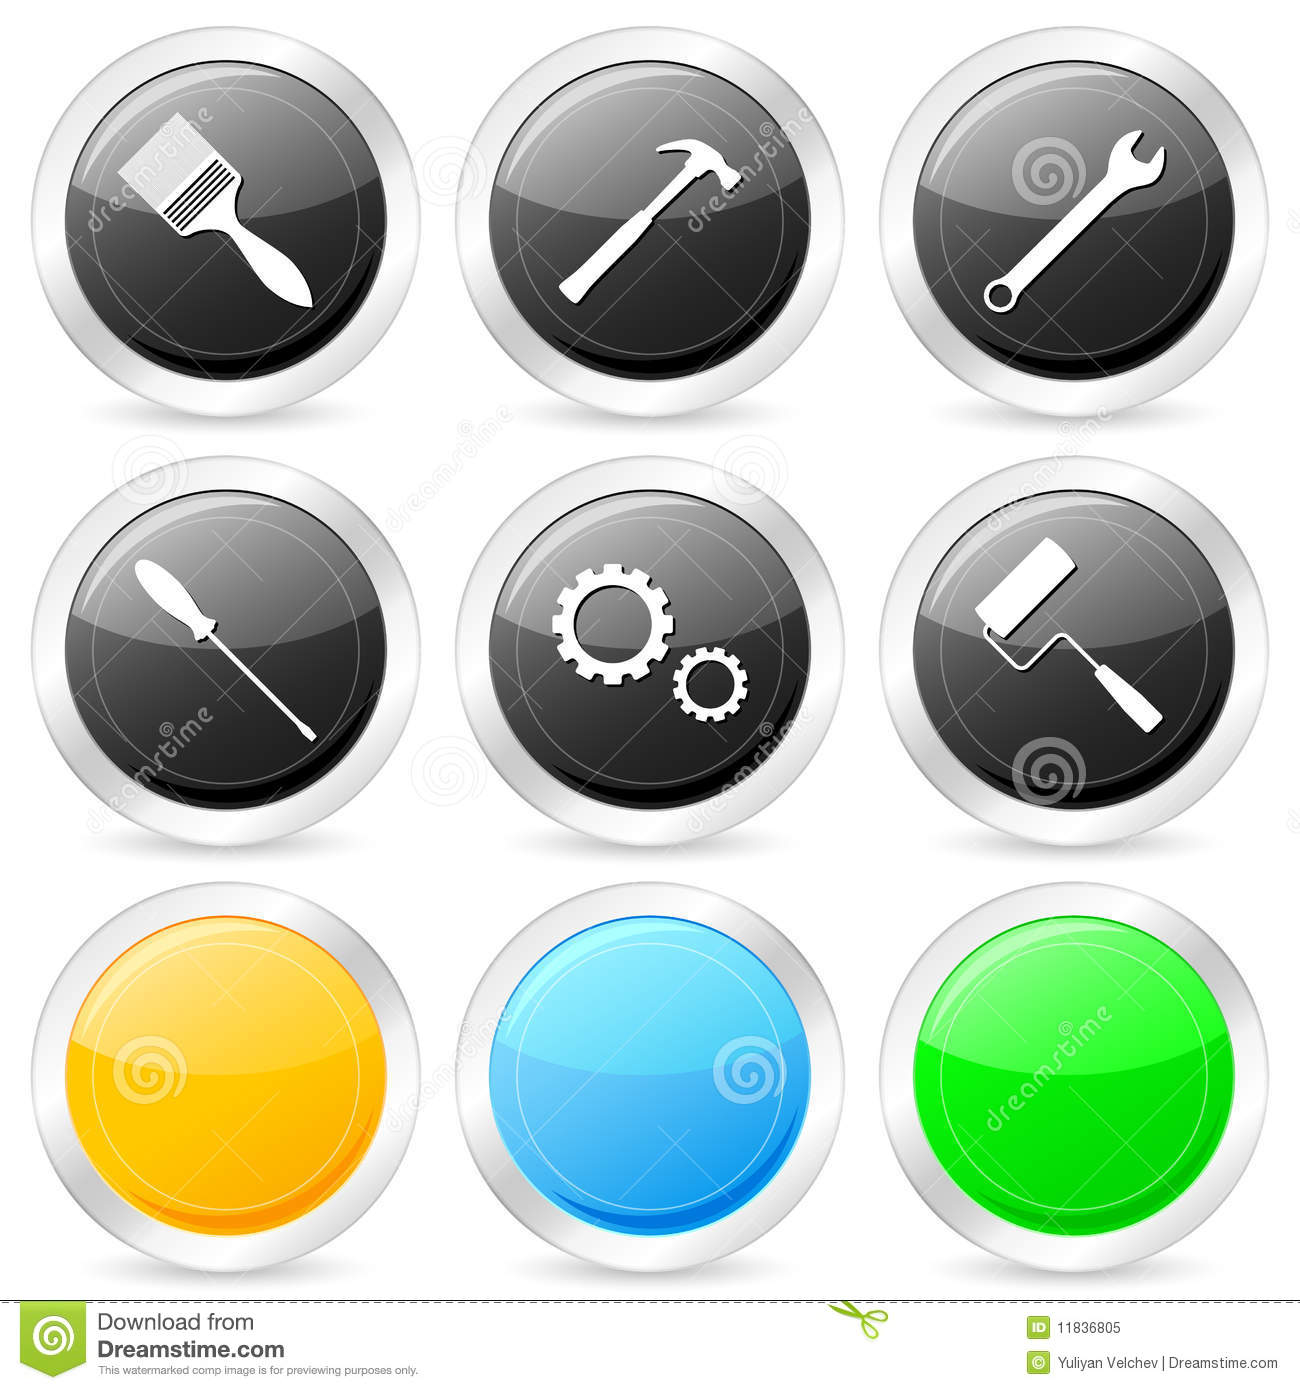 9 Tools Icon Circle Images